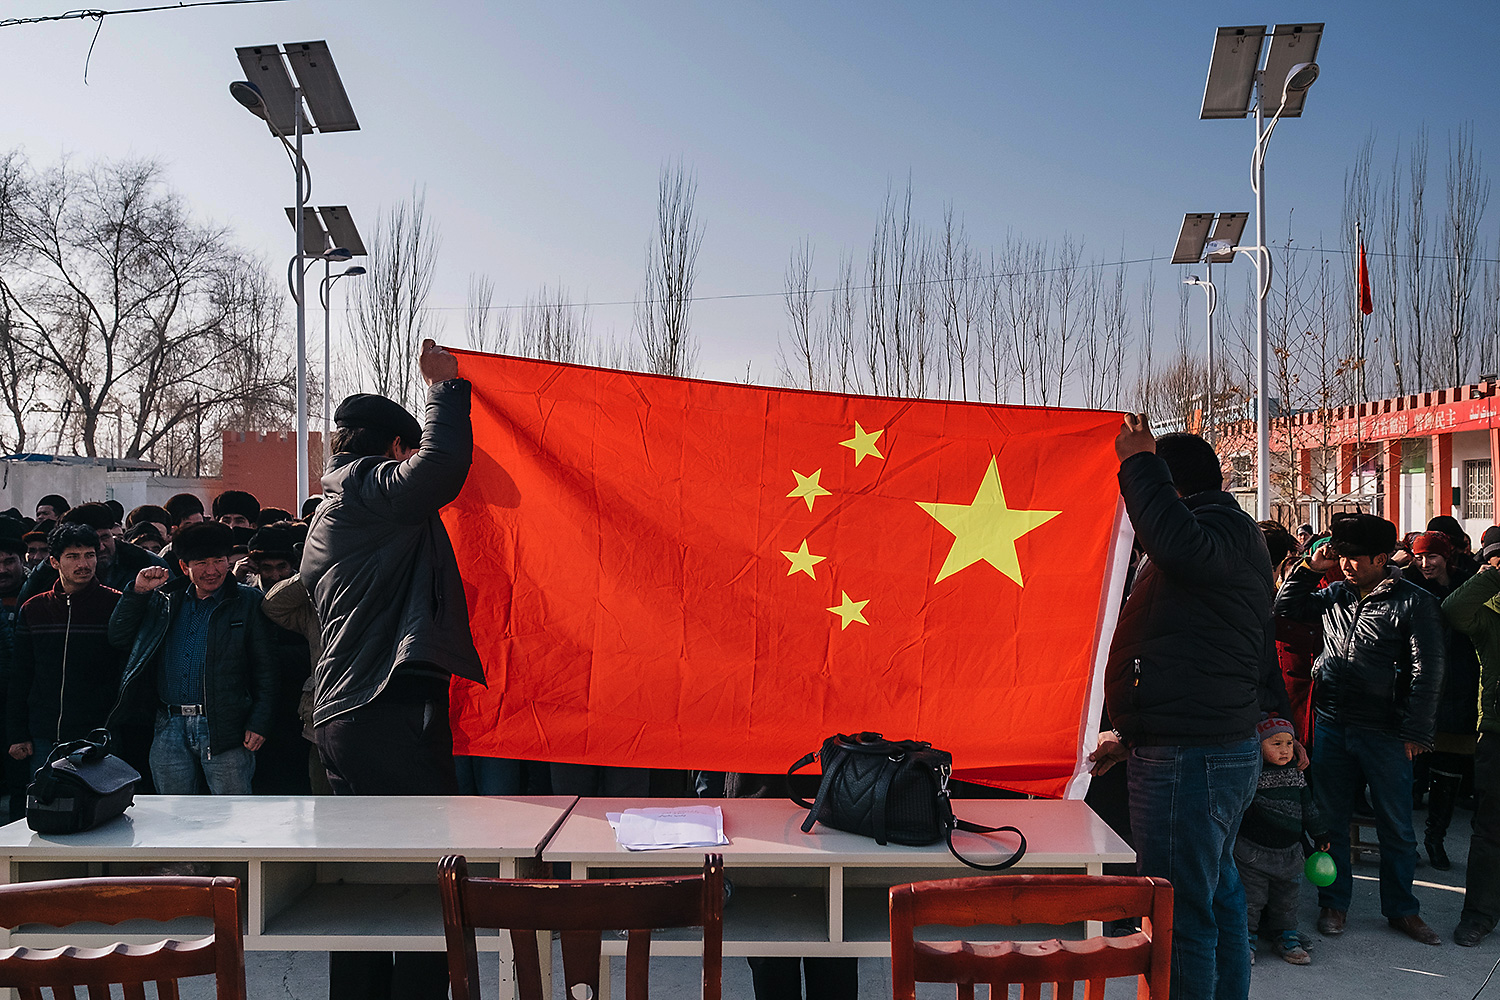 Uighur villagers pledge their allegiance to the People's Republic of China, and its flag, during a weekly meeting led by Party cadres as part of an effort to dampen separatism in the region.